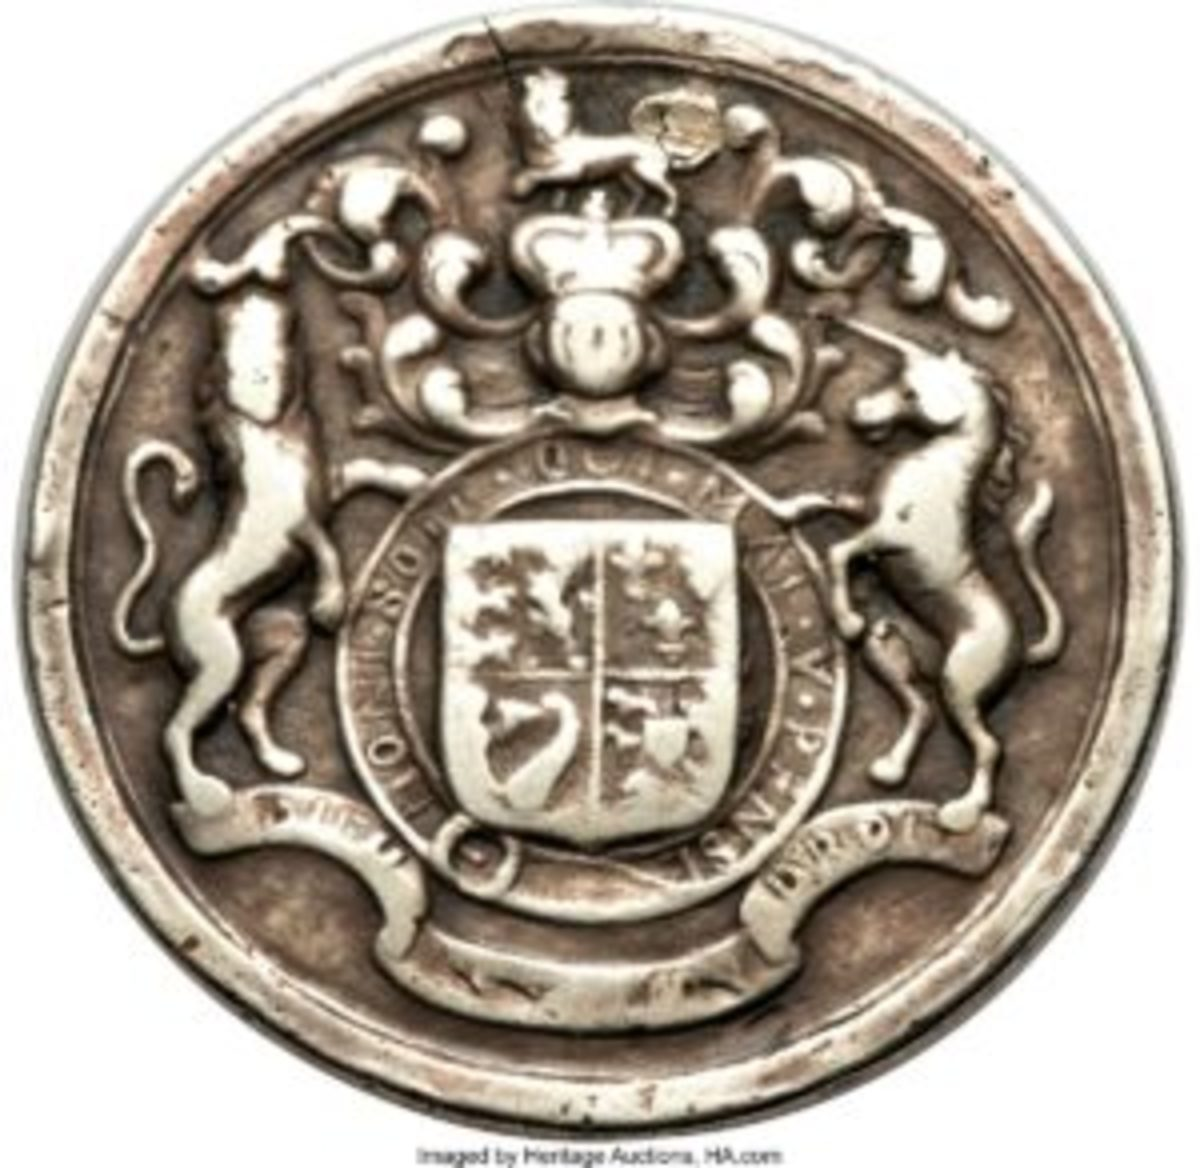 The reverse of the George II medal.